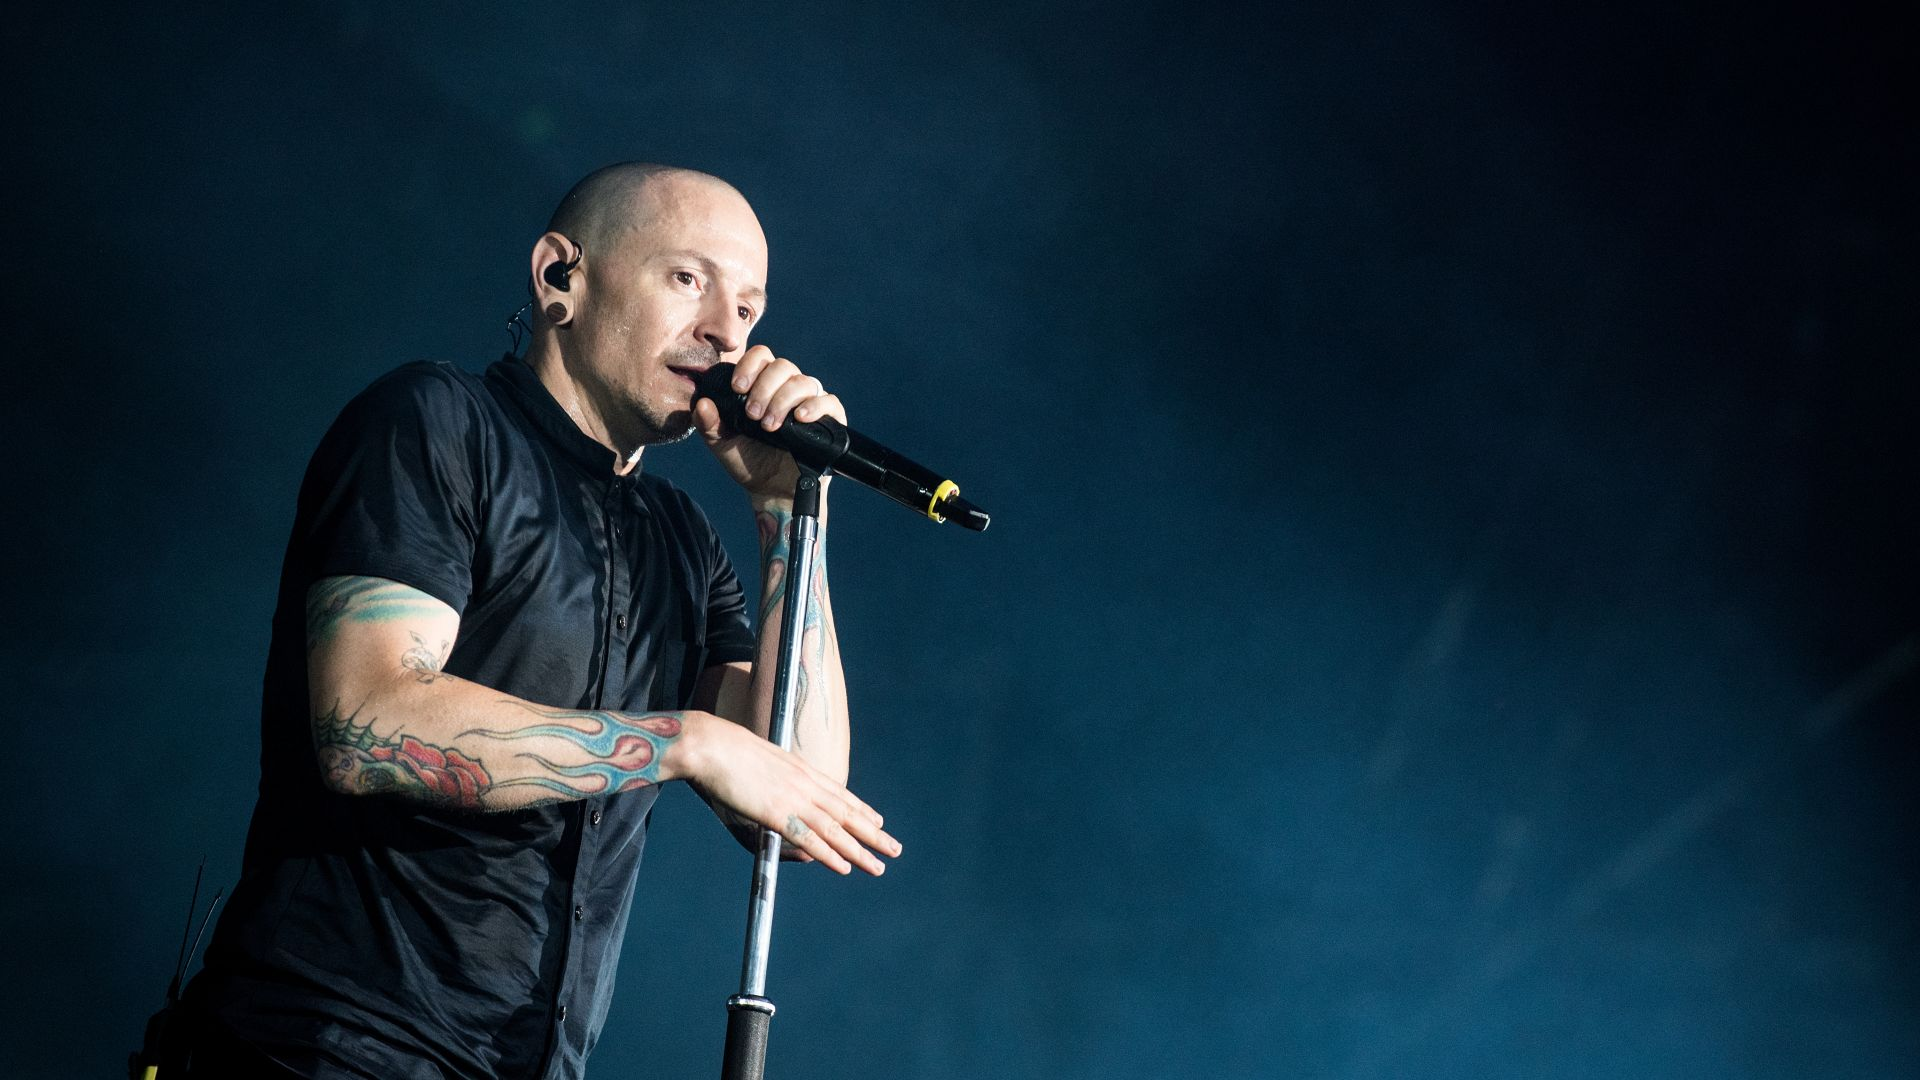 Честер Беннингтон, Chester Bennington, photo, 5k (horizontal)